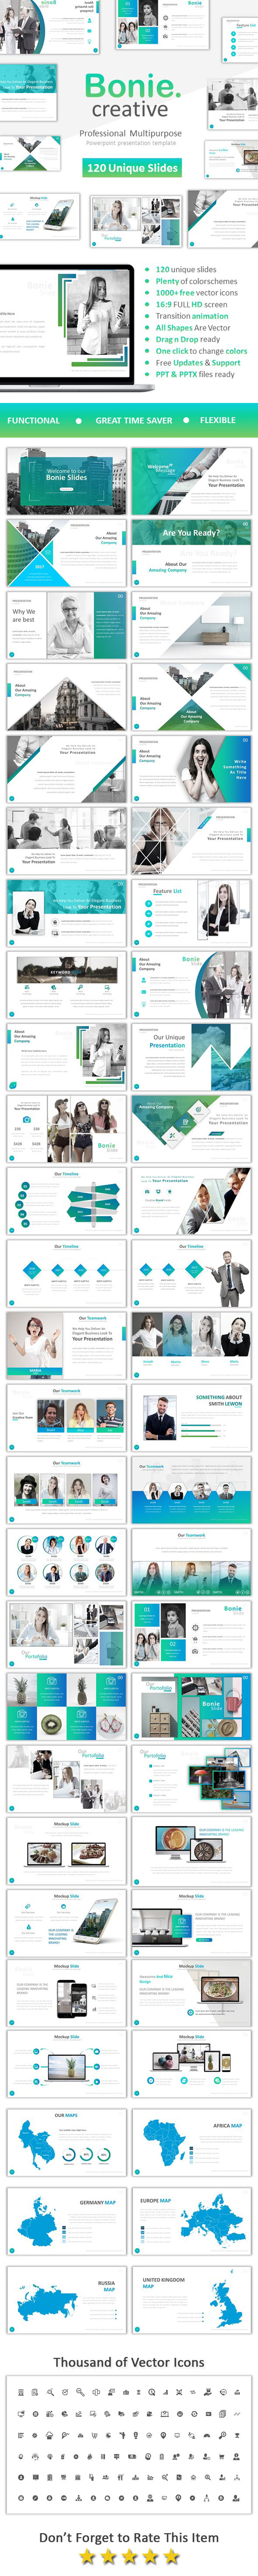 Bonie Creative Powerpoint - Business PowerPoint Templates